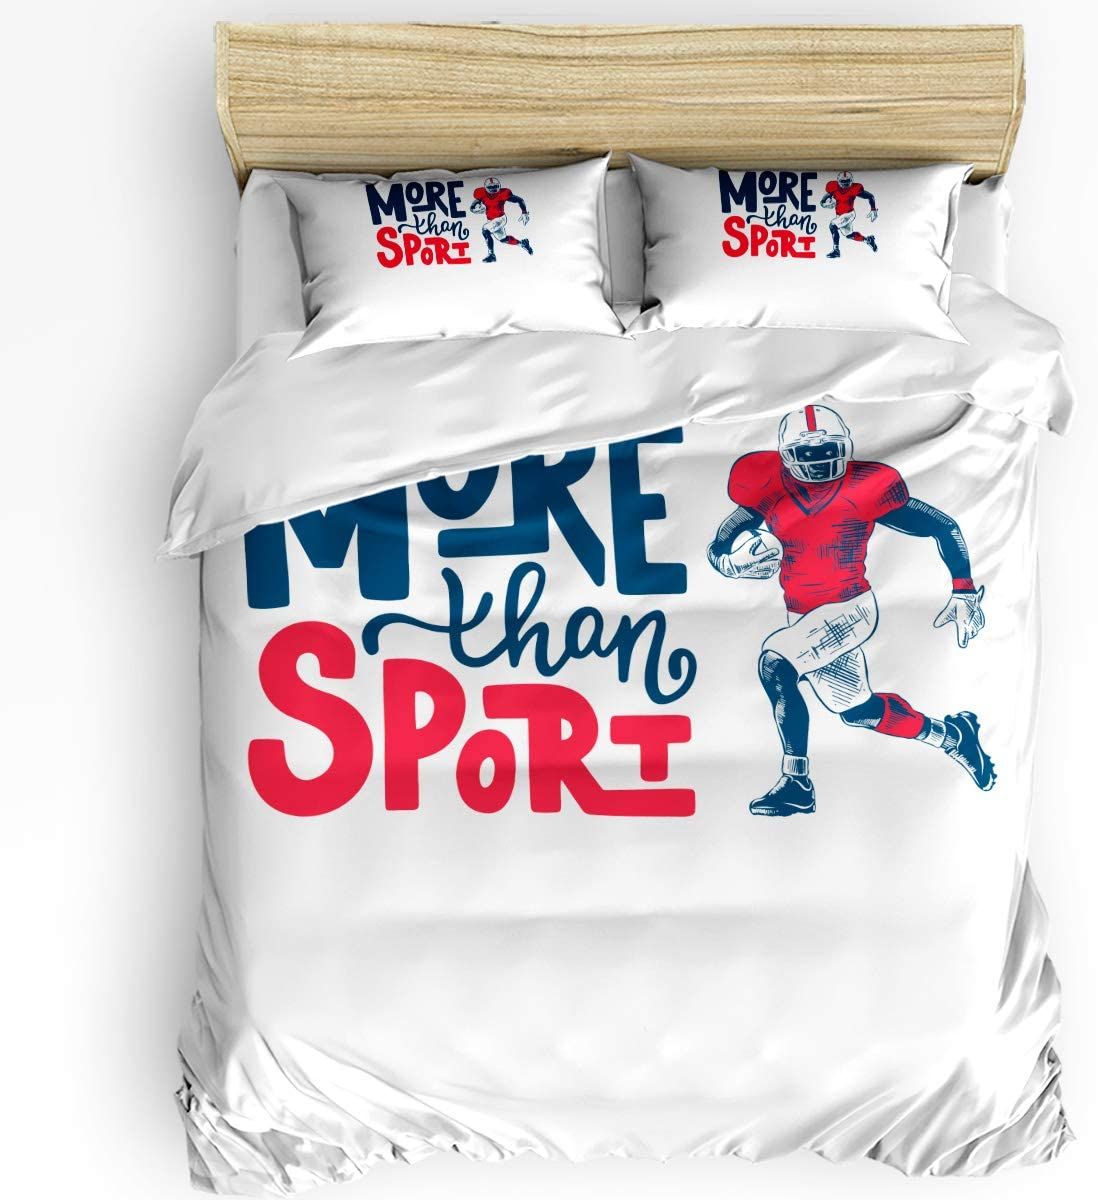 PartyShow 4 Piece Bed Trust Sets service Rugby Sport Twin Bedroom Comforters